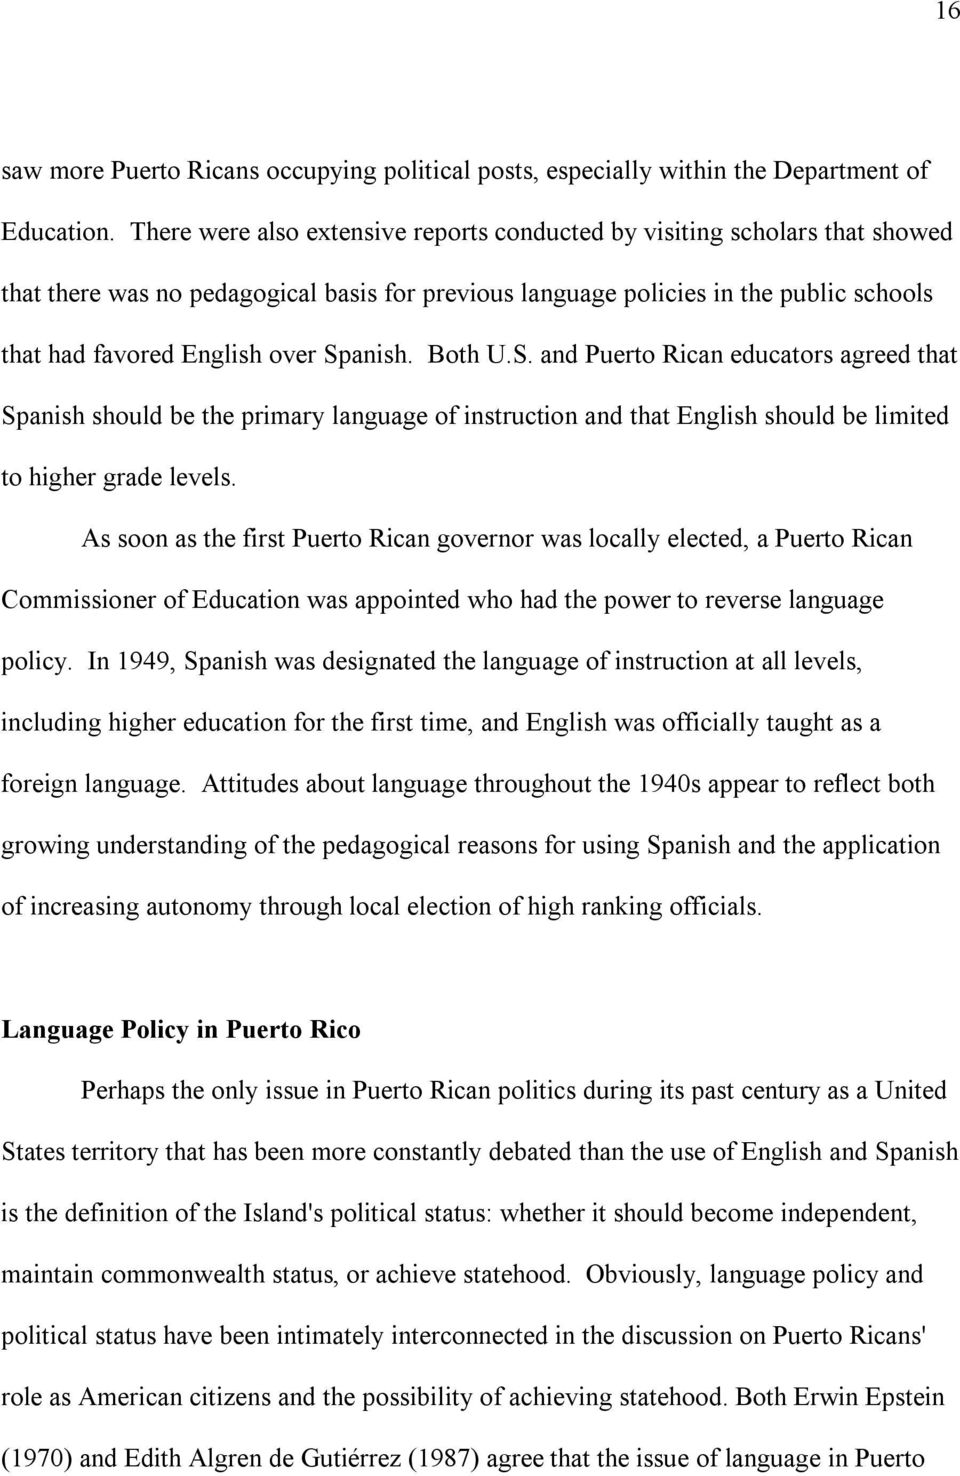 Spanish. Both U.S. and Puerto Rican educators agreed that Spanish should be the primary language of instruction and that English should be limited to higher grade levels.